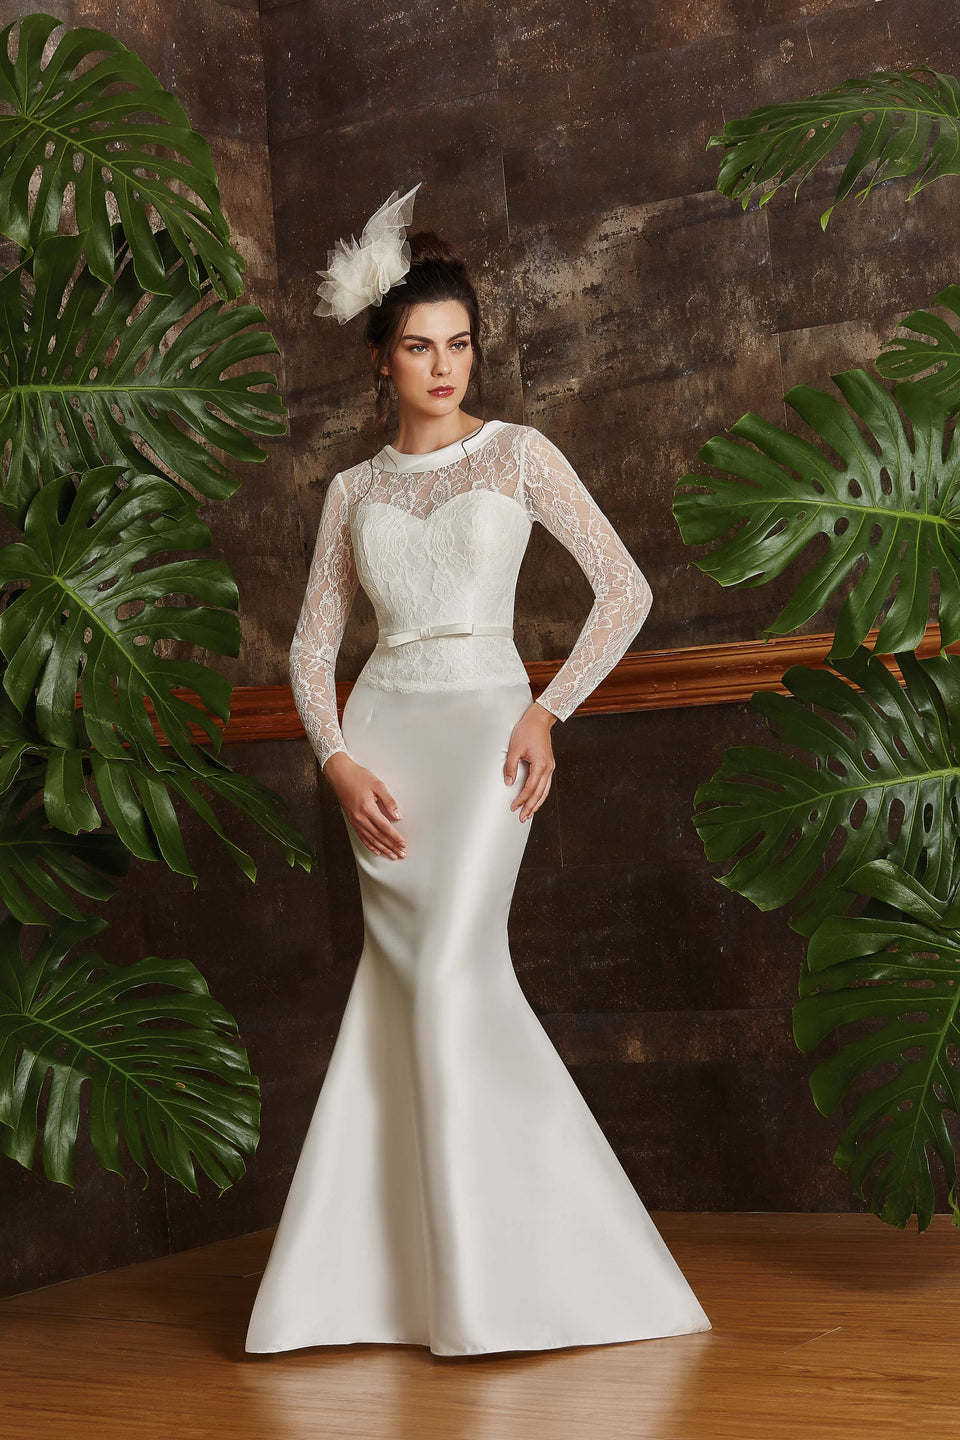 Vestidos De Boda Civil White México Carolina Vázquez Dress